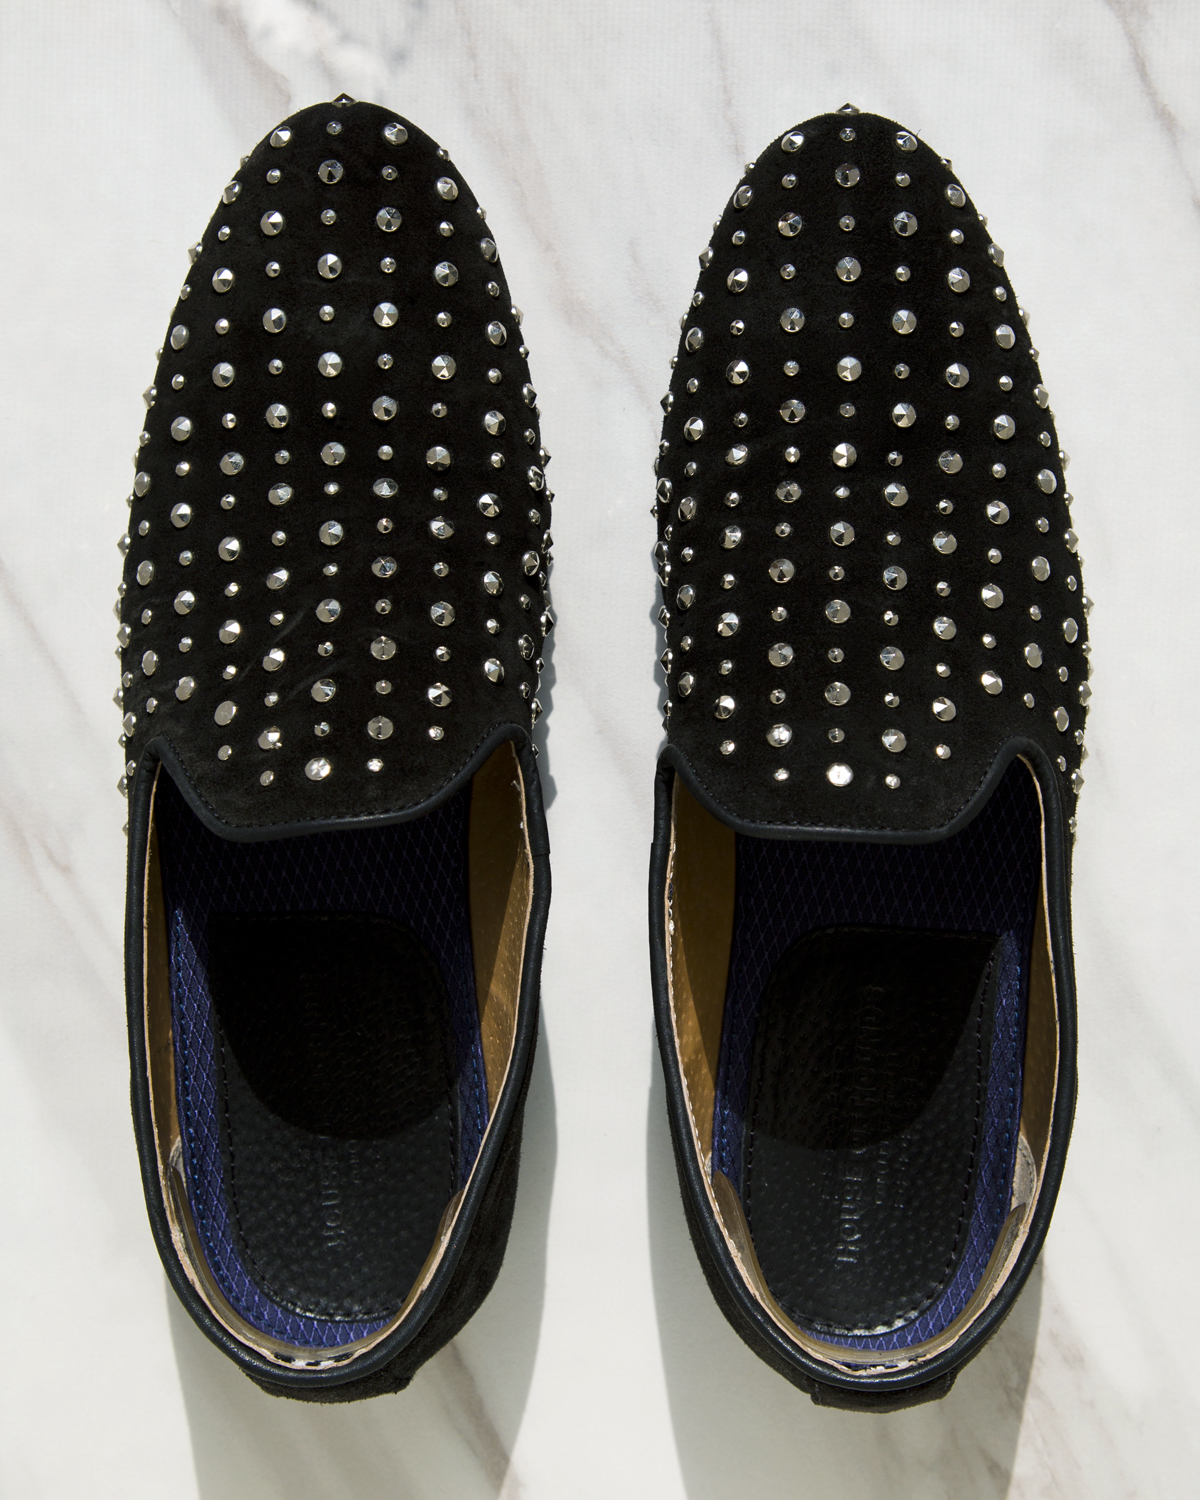 House of Hounds Emperor Studded Loafers